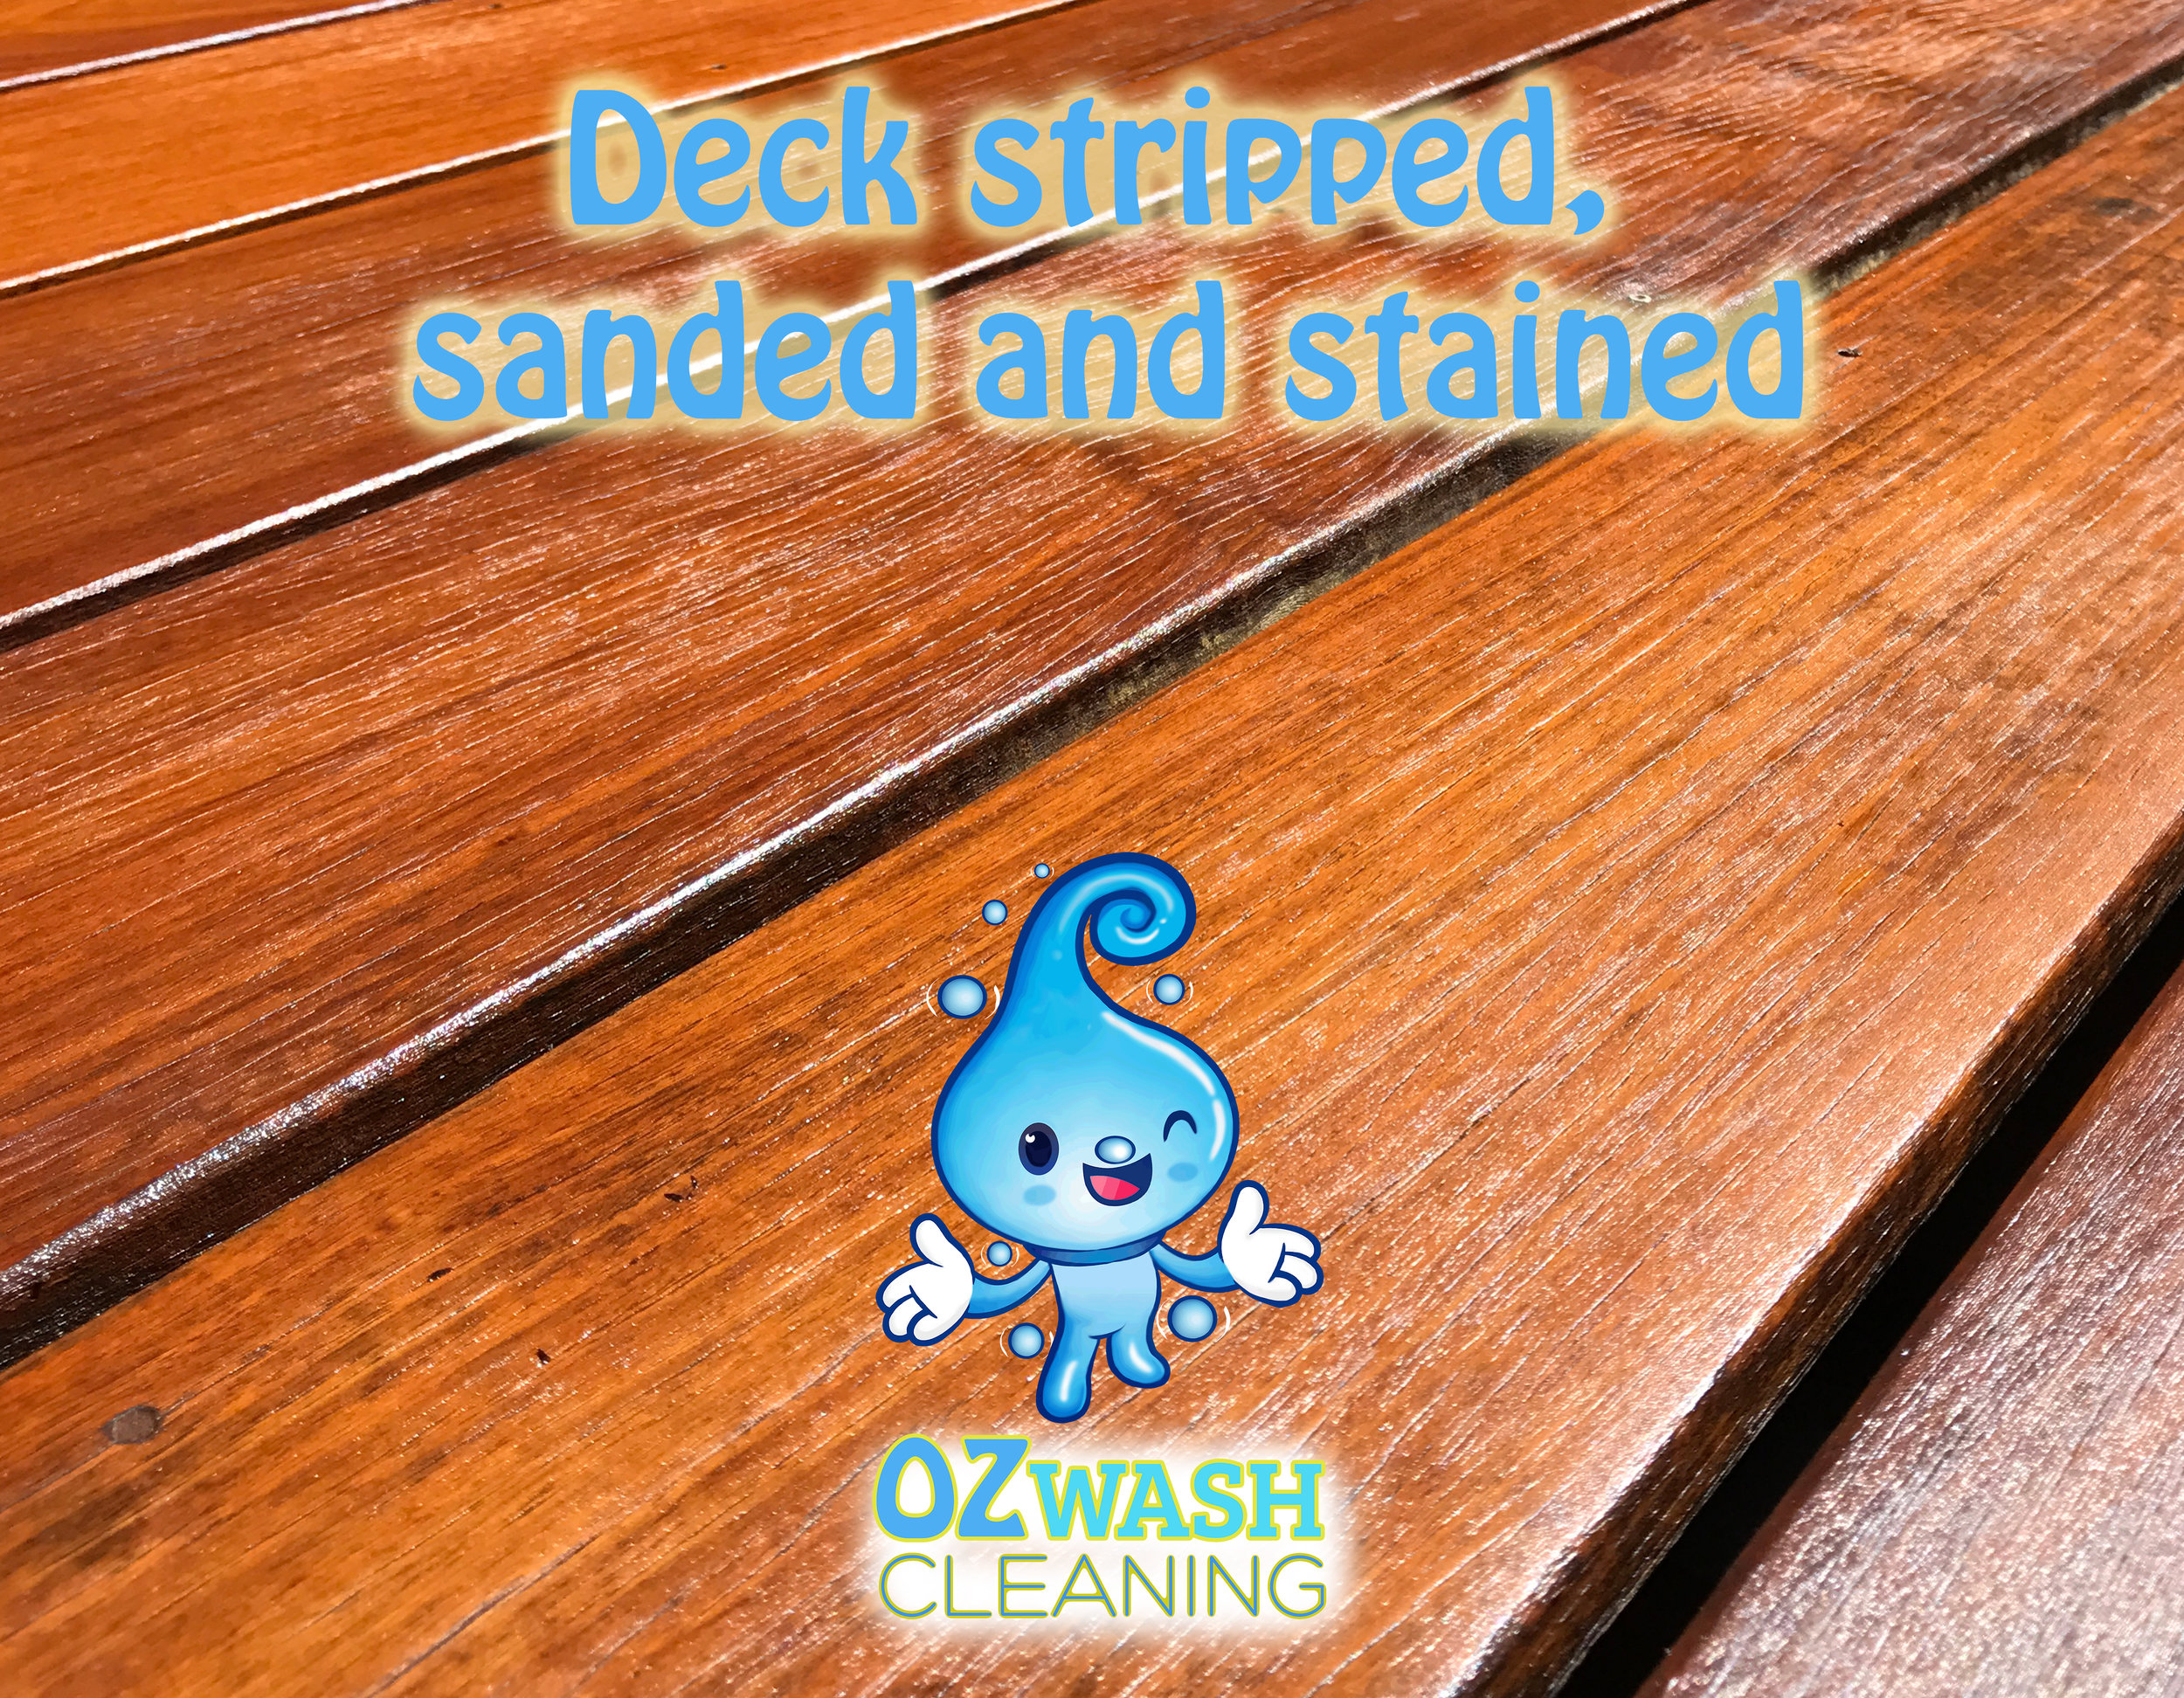 Deckstripped,sanded&stained.jpg